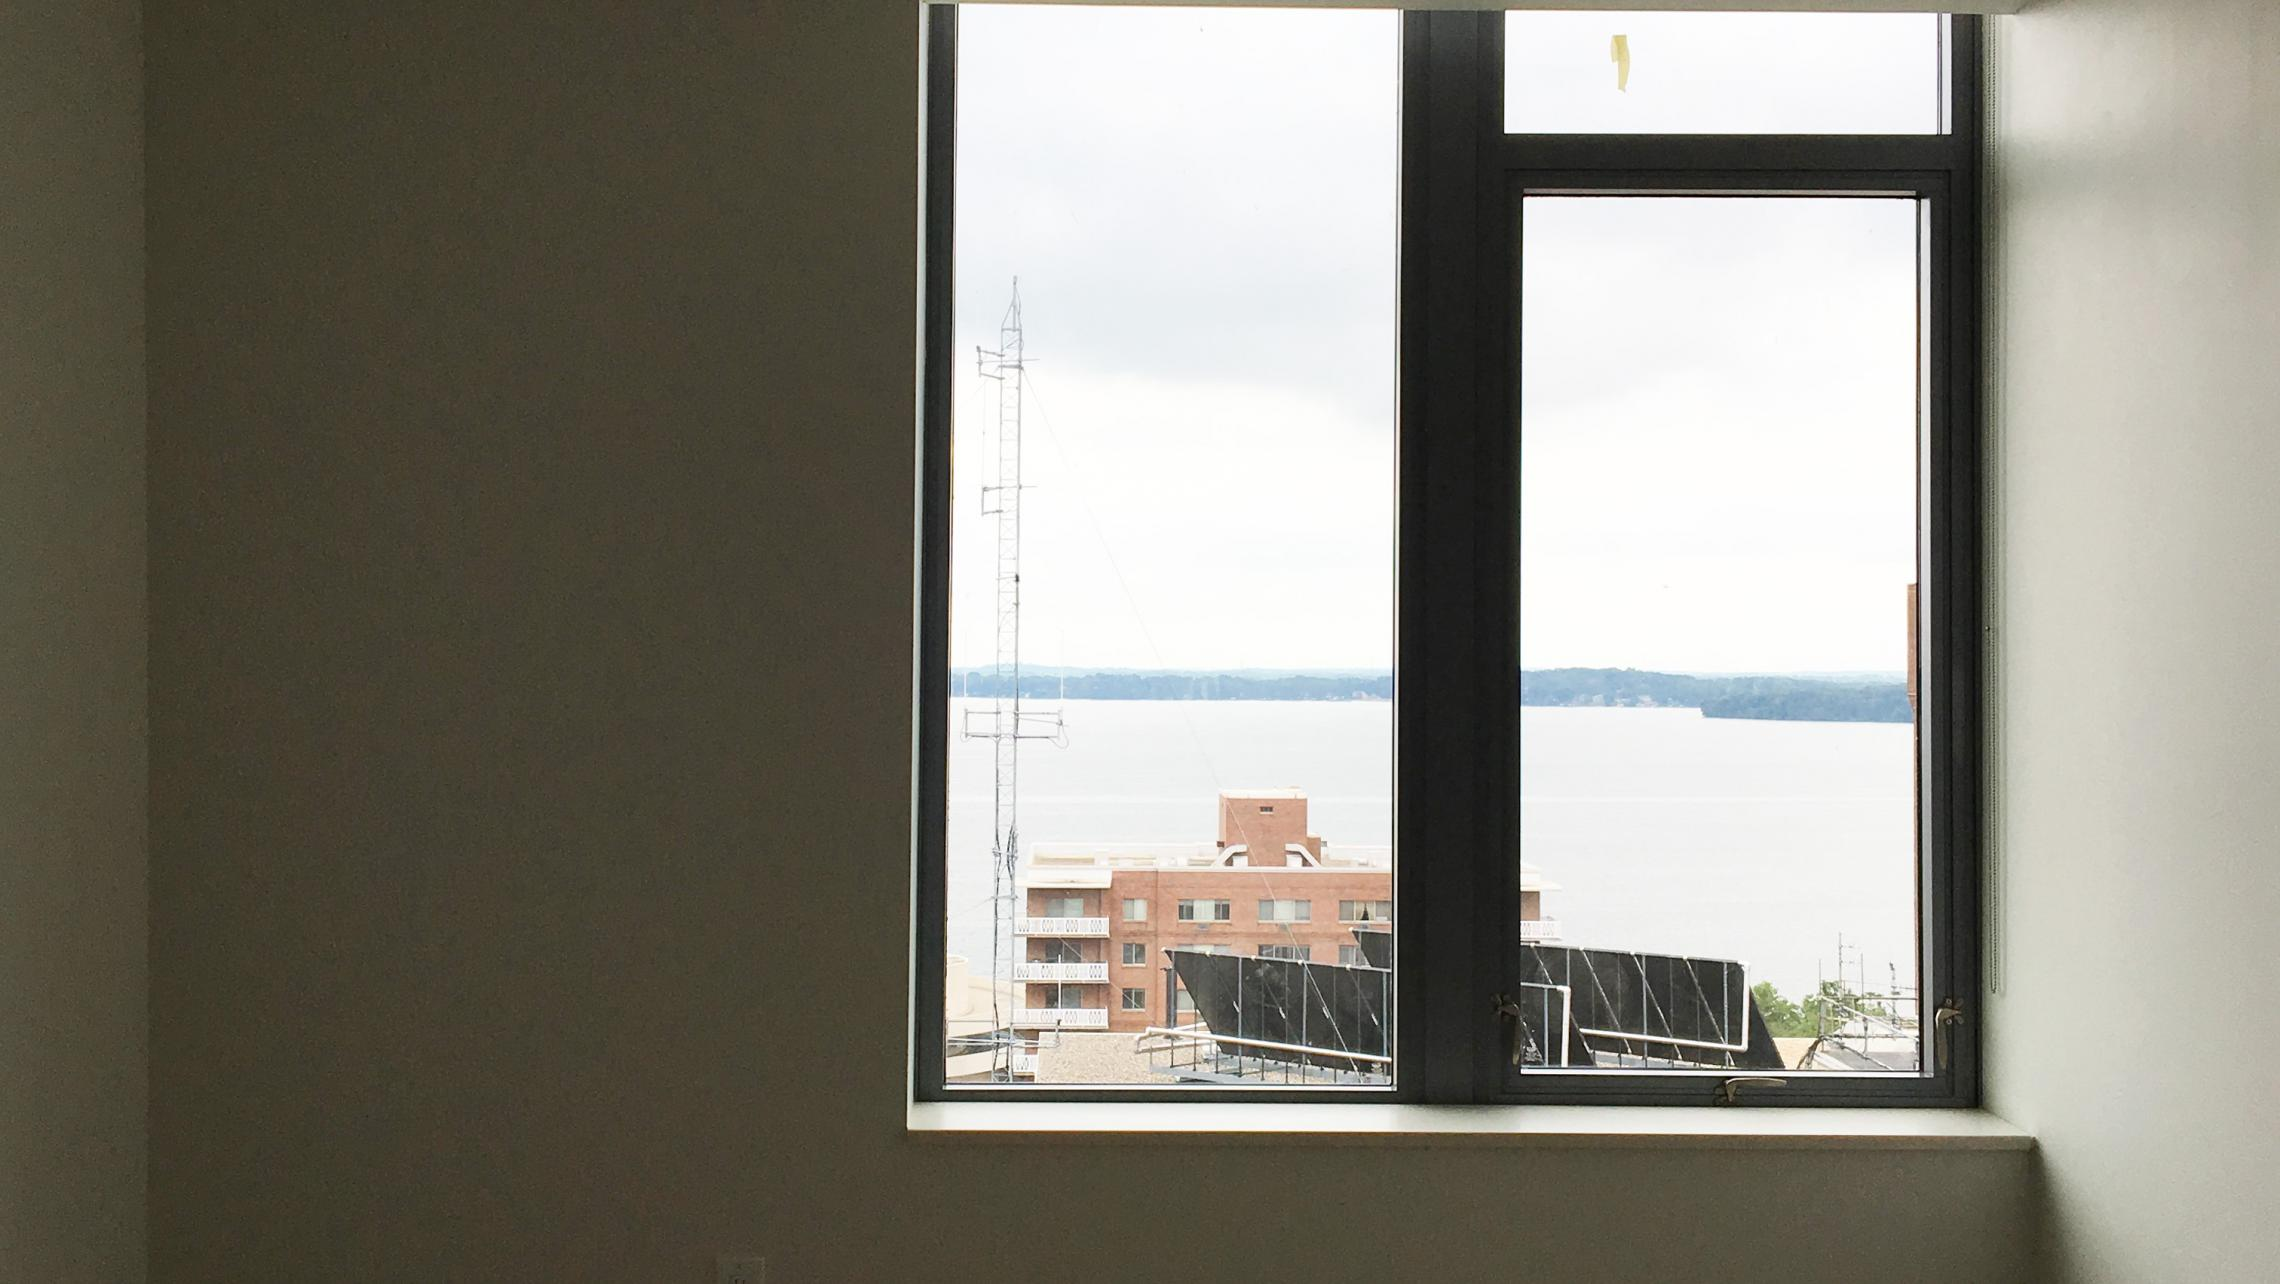 The-Pressman-Apartments-911-Top-Floor-Lake-View-Modern-Upscale-Luxury-Lifestyle-Capitol-Square-Gym-Fitness-Terrace-Downtown-Madison